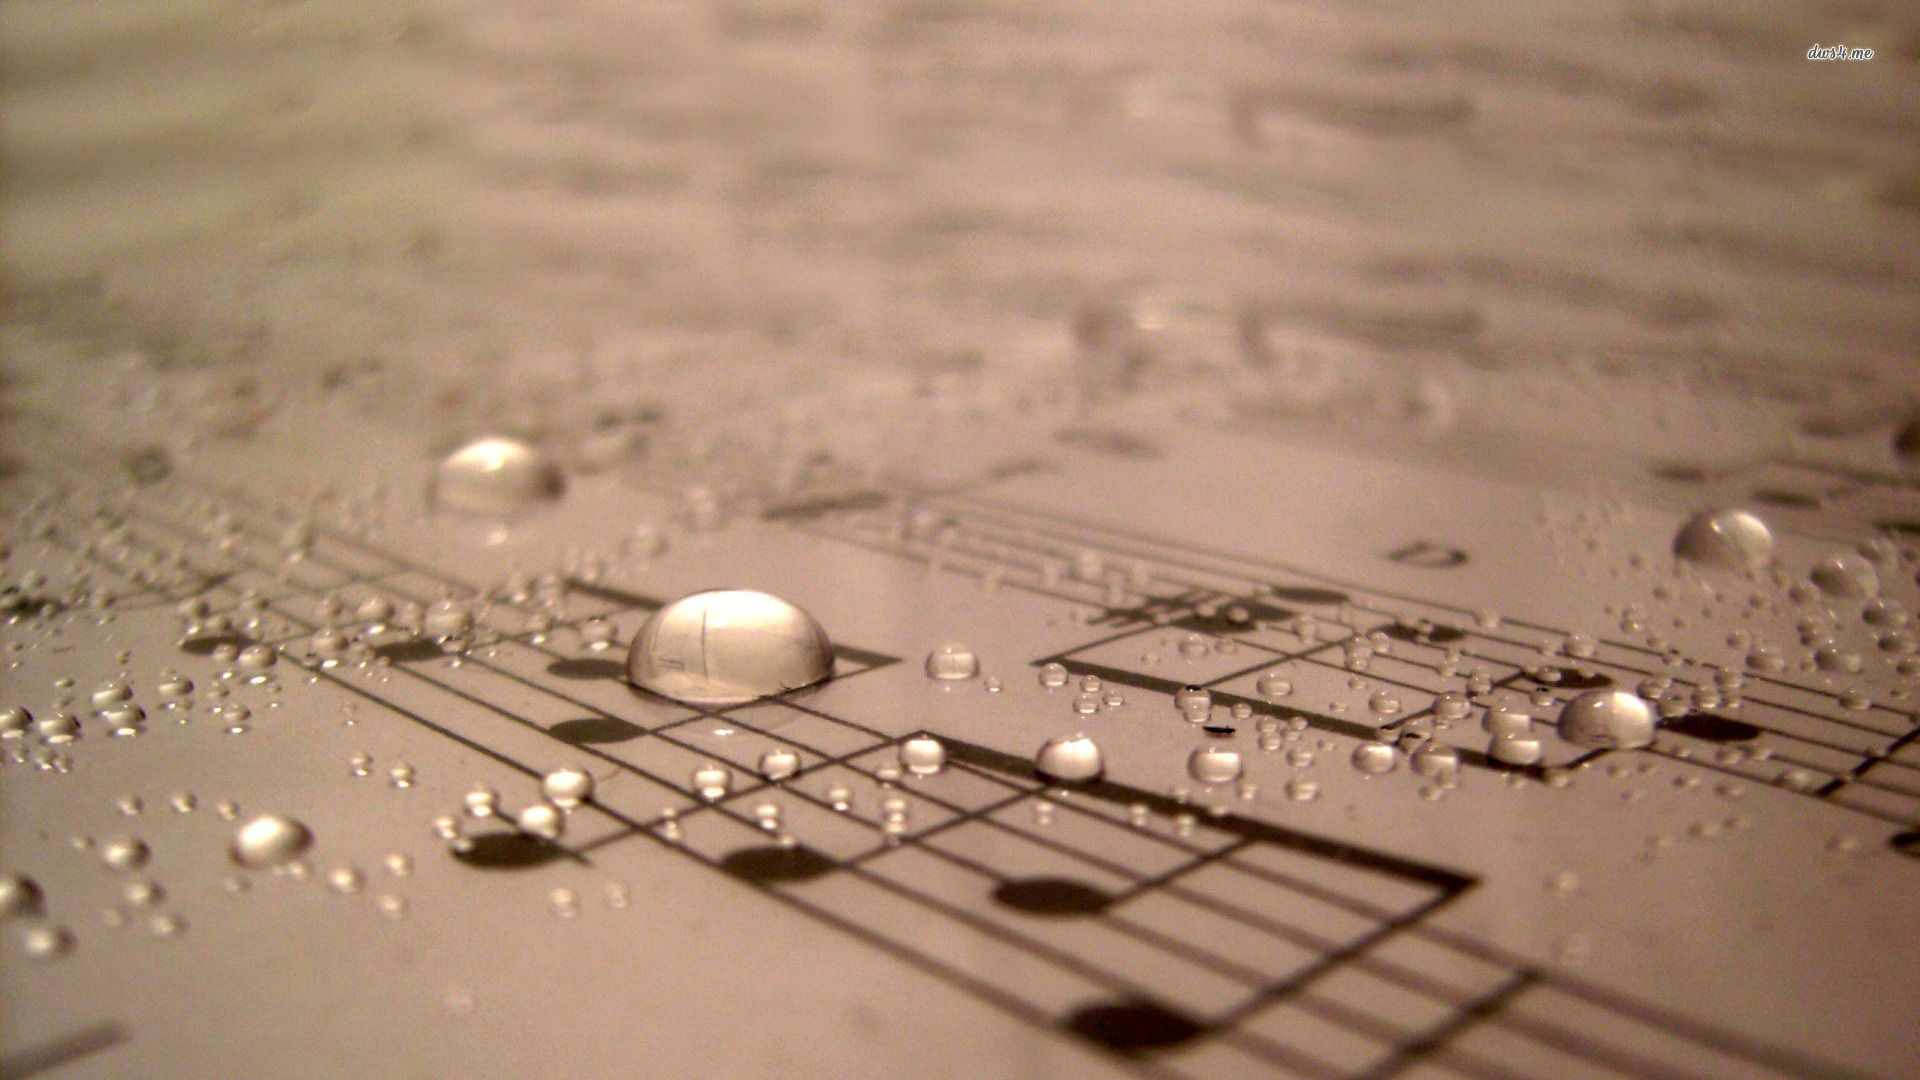 Hd Music Wallpapers For Laptop: Sheet Music Desktop Background - PinIt Gallery